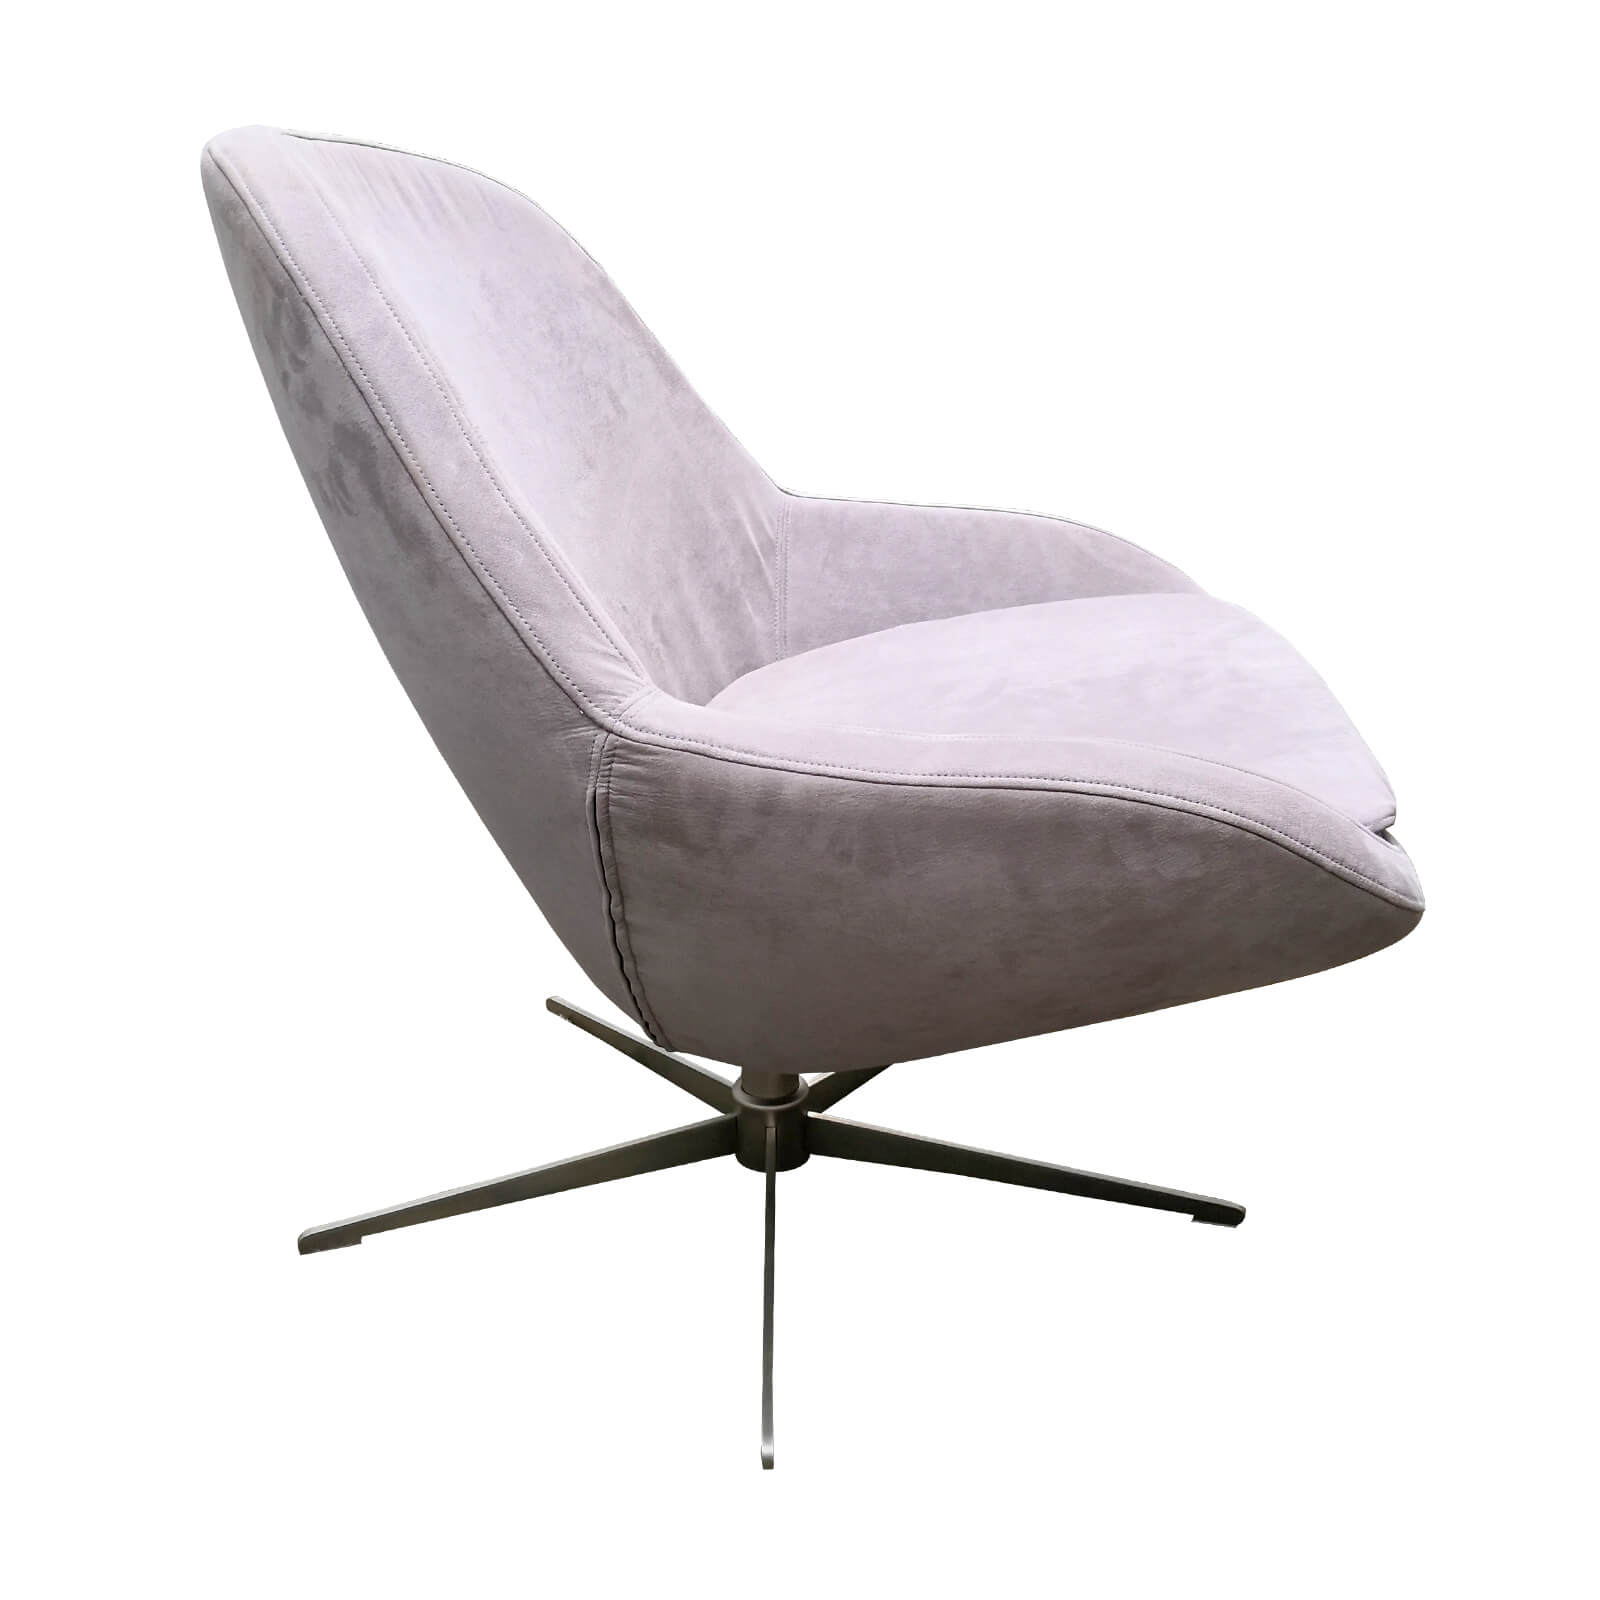 Two Design Lovers Bo Concept Veneto grey occasional swivel chair side